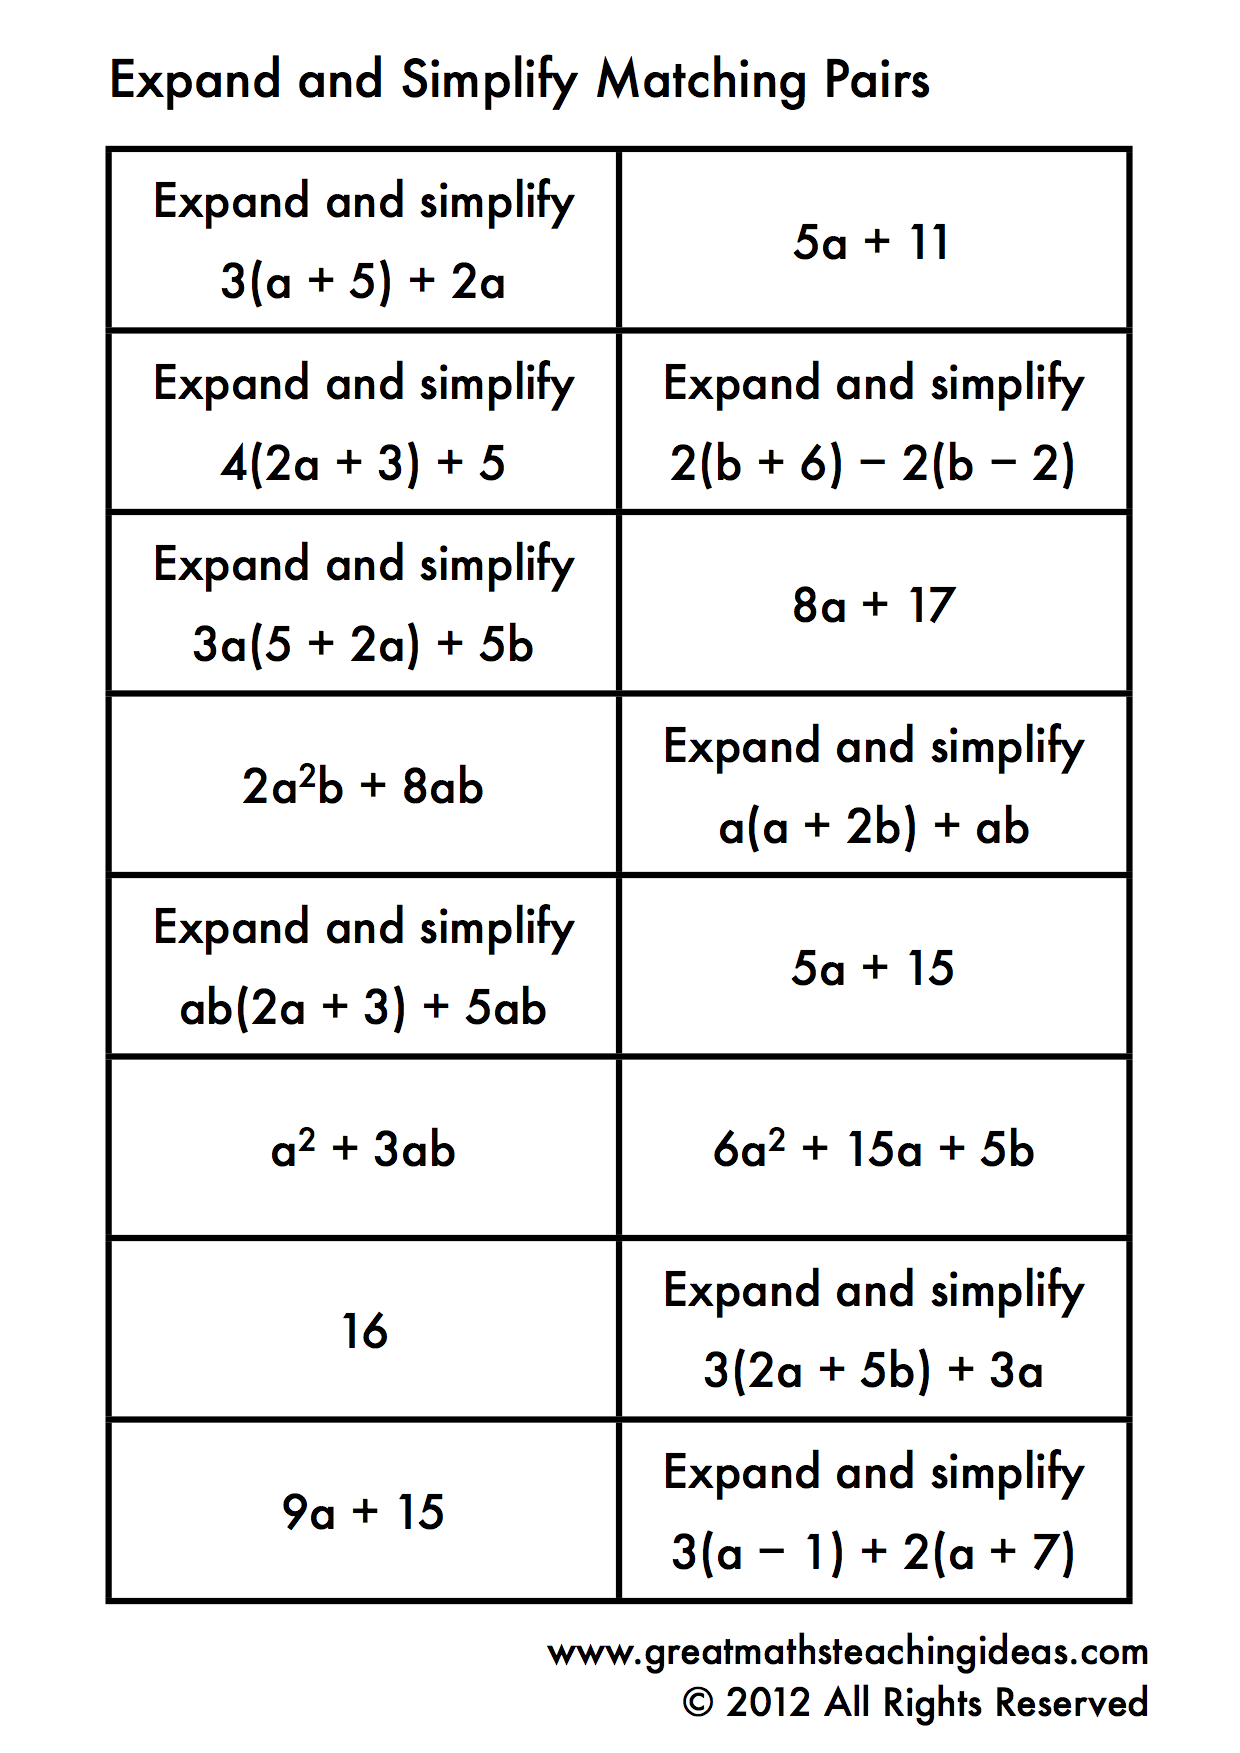 Expanding And Simplifying Single Brackets Matching Pairs